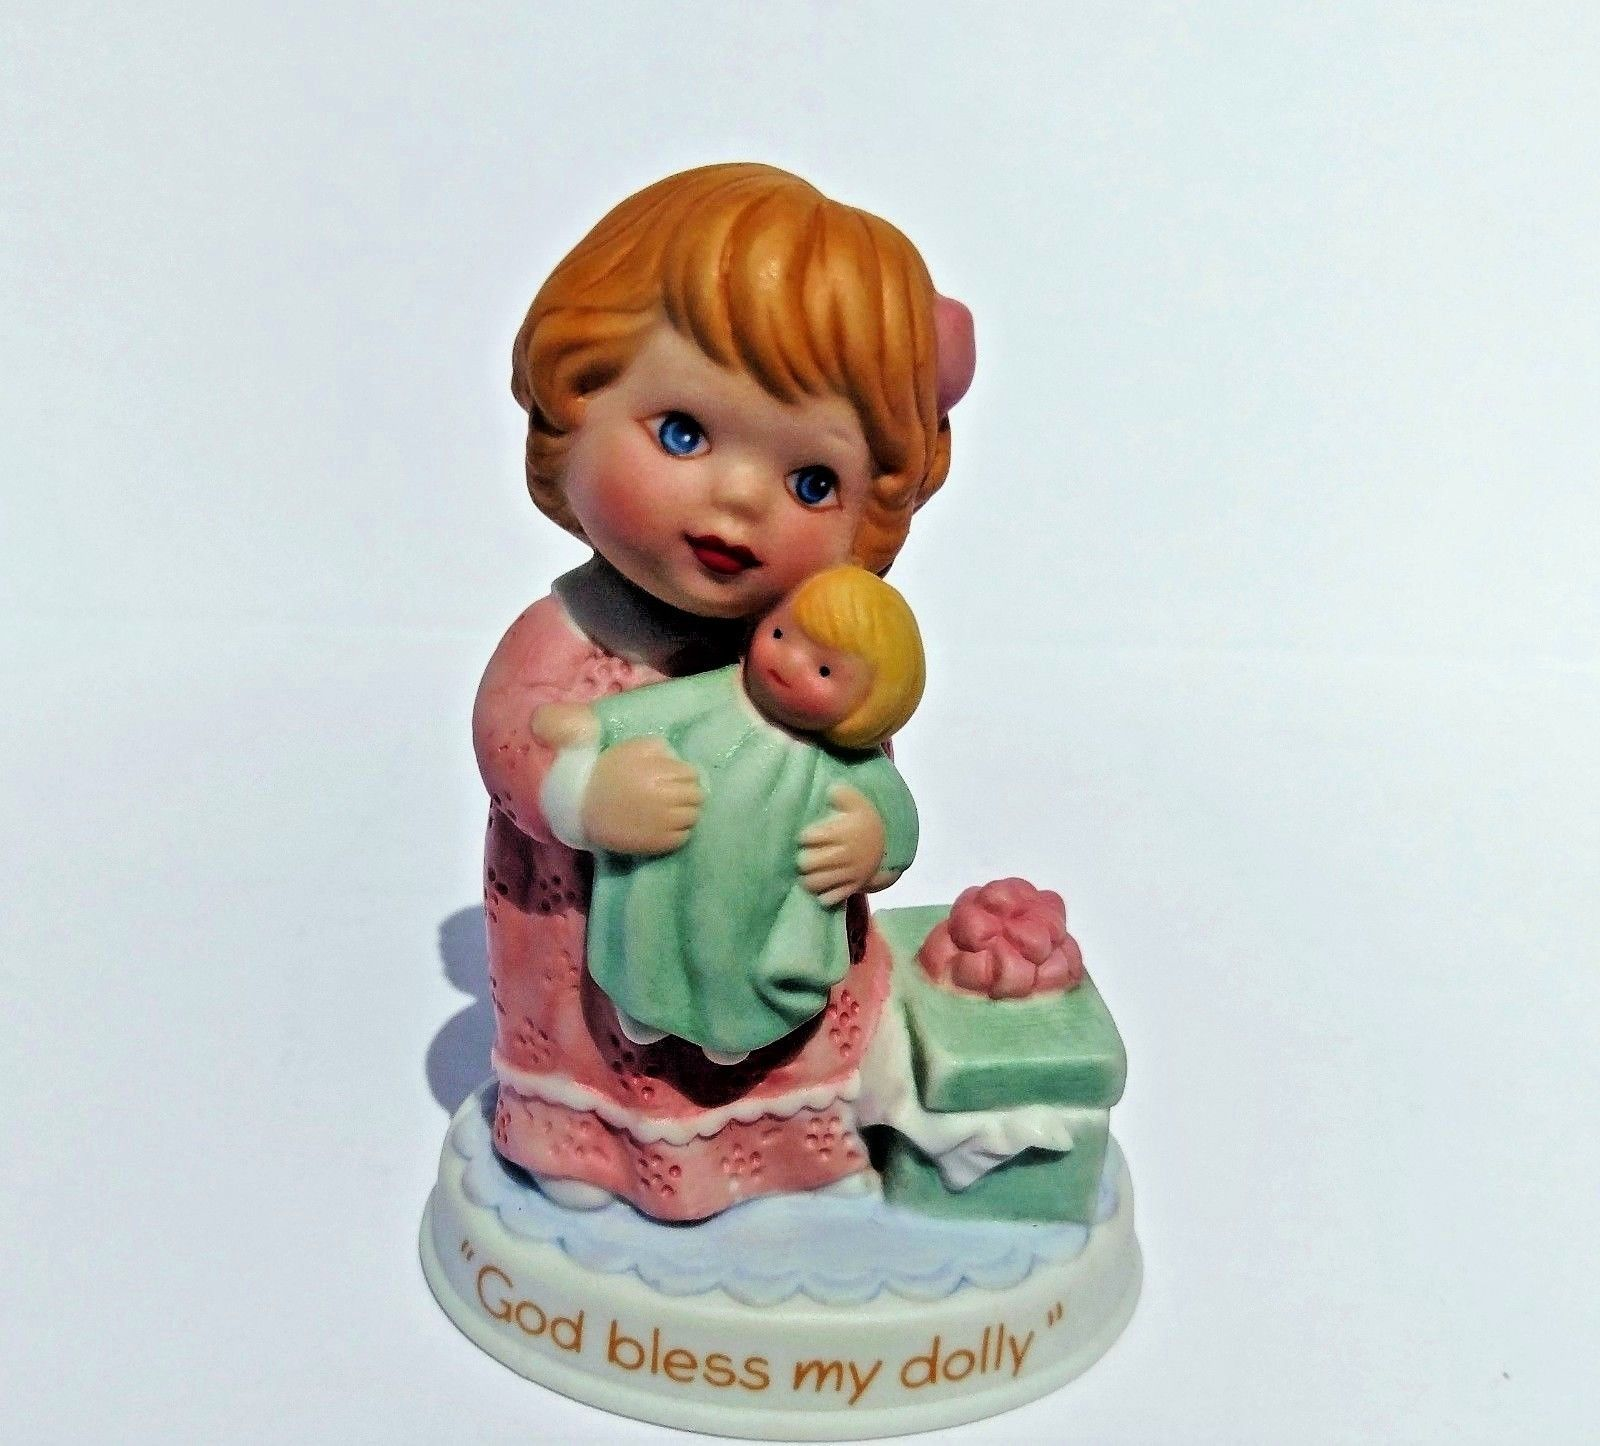 Avon Tender Memories Collection 1990 God Bless My Dolly Figurine With Box